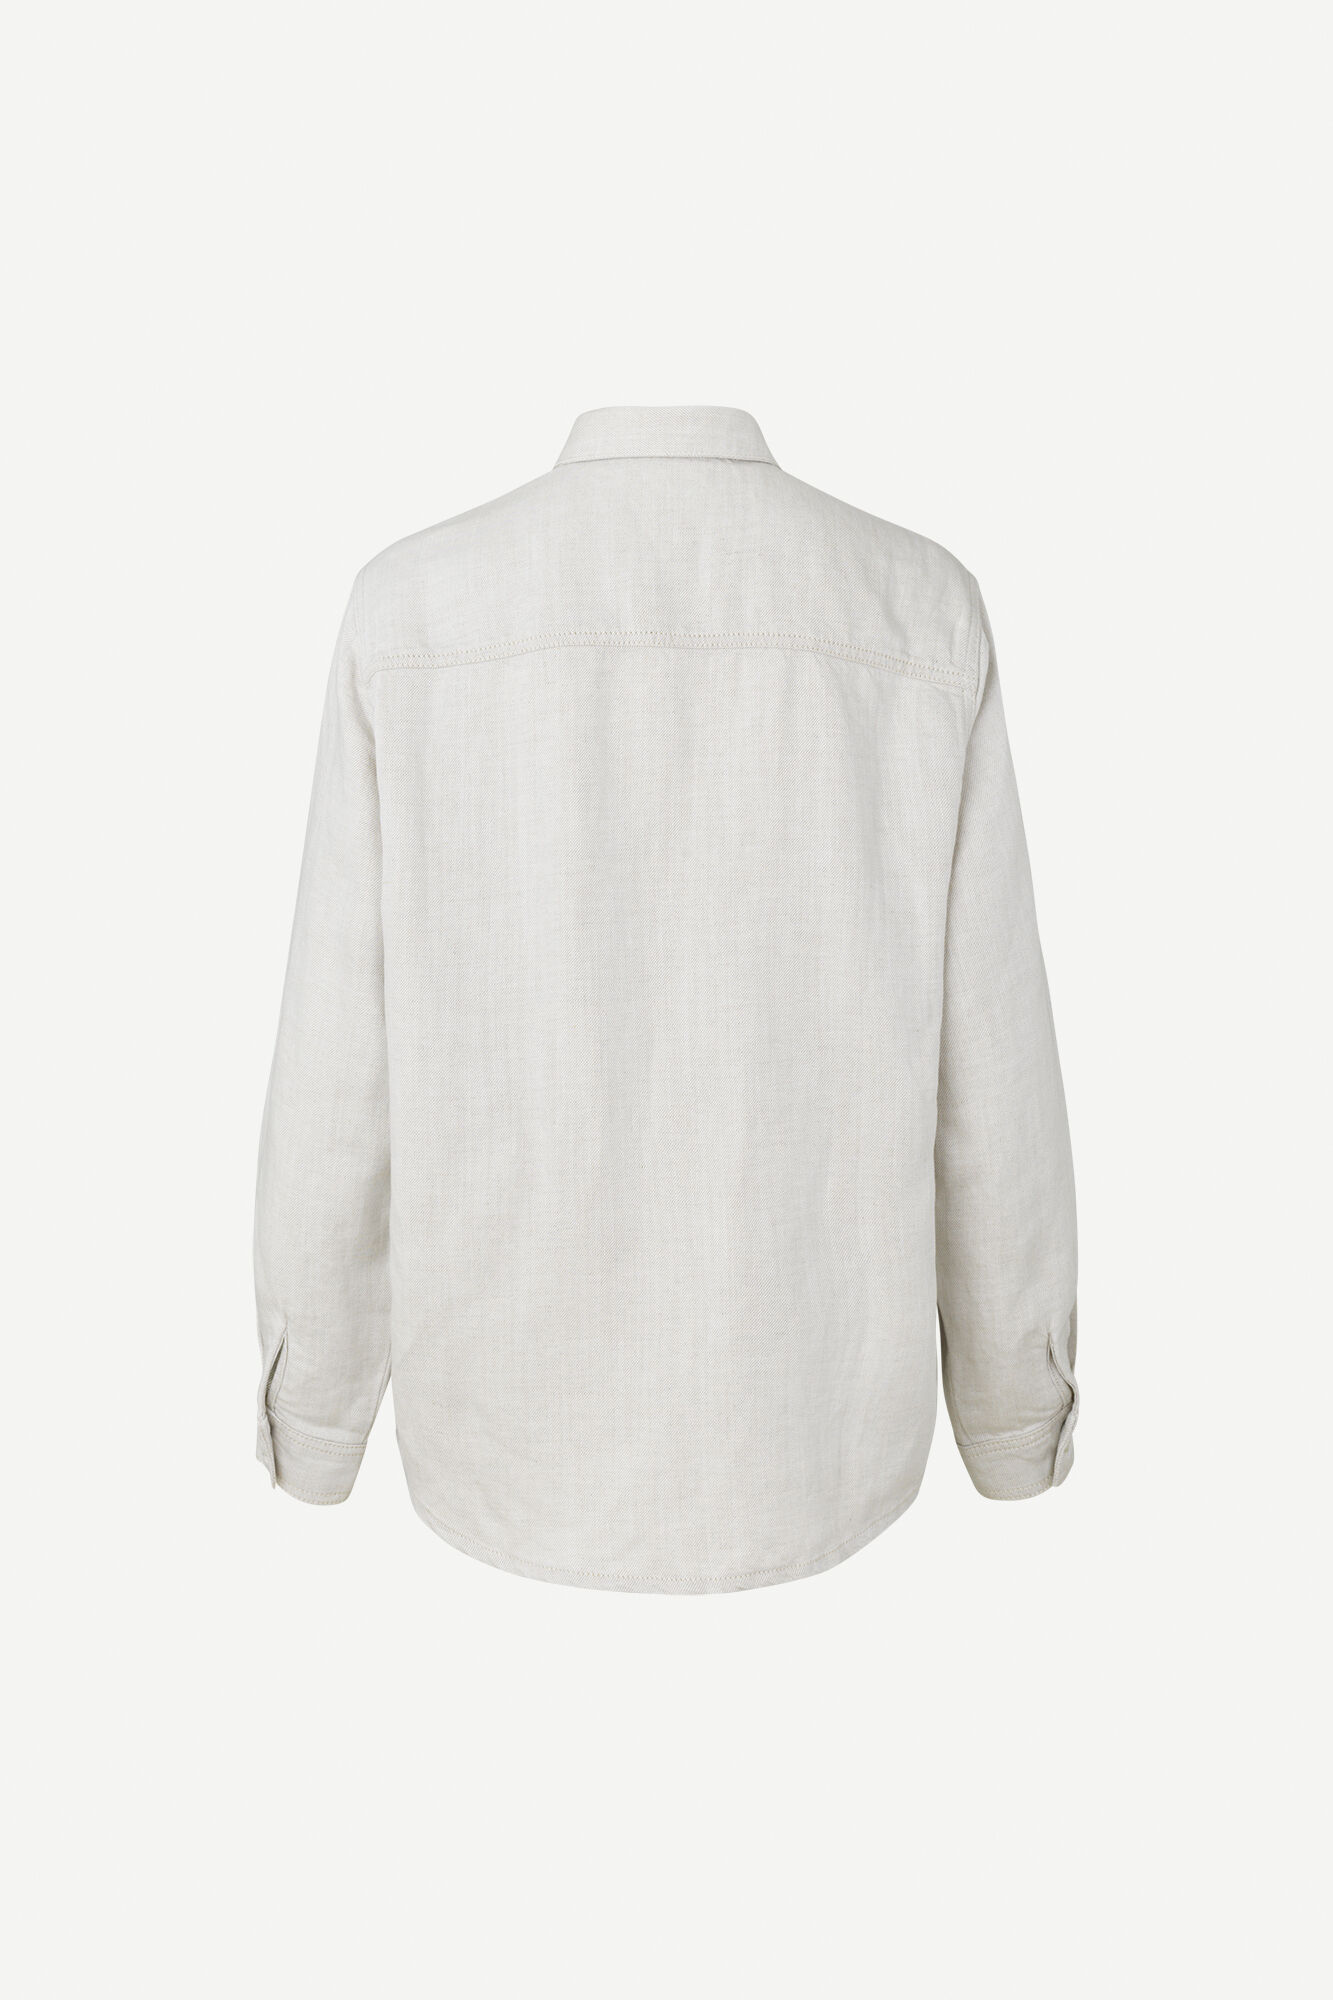 Manz shirt 11484, WARM WHITE